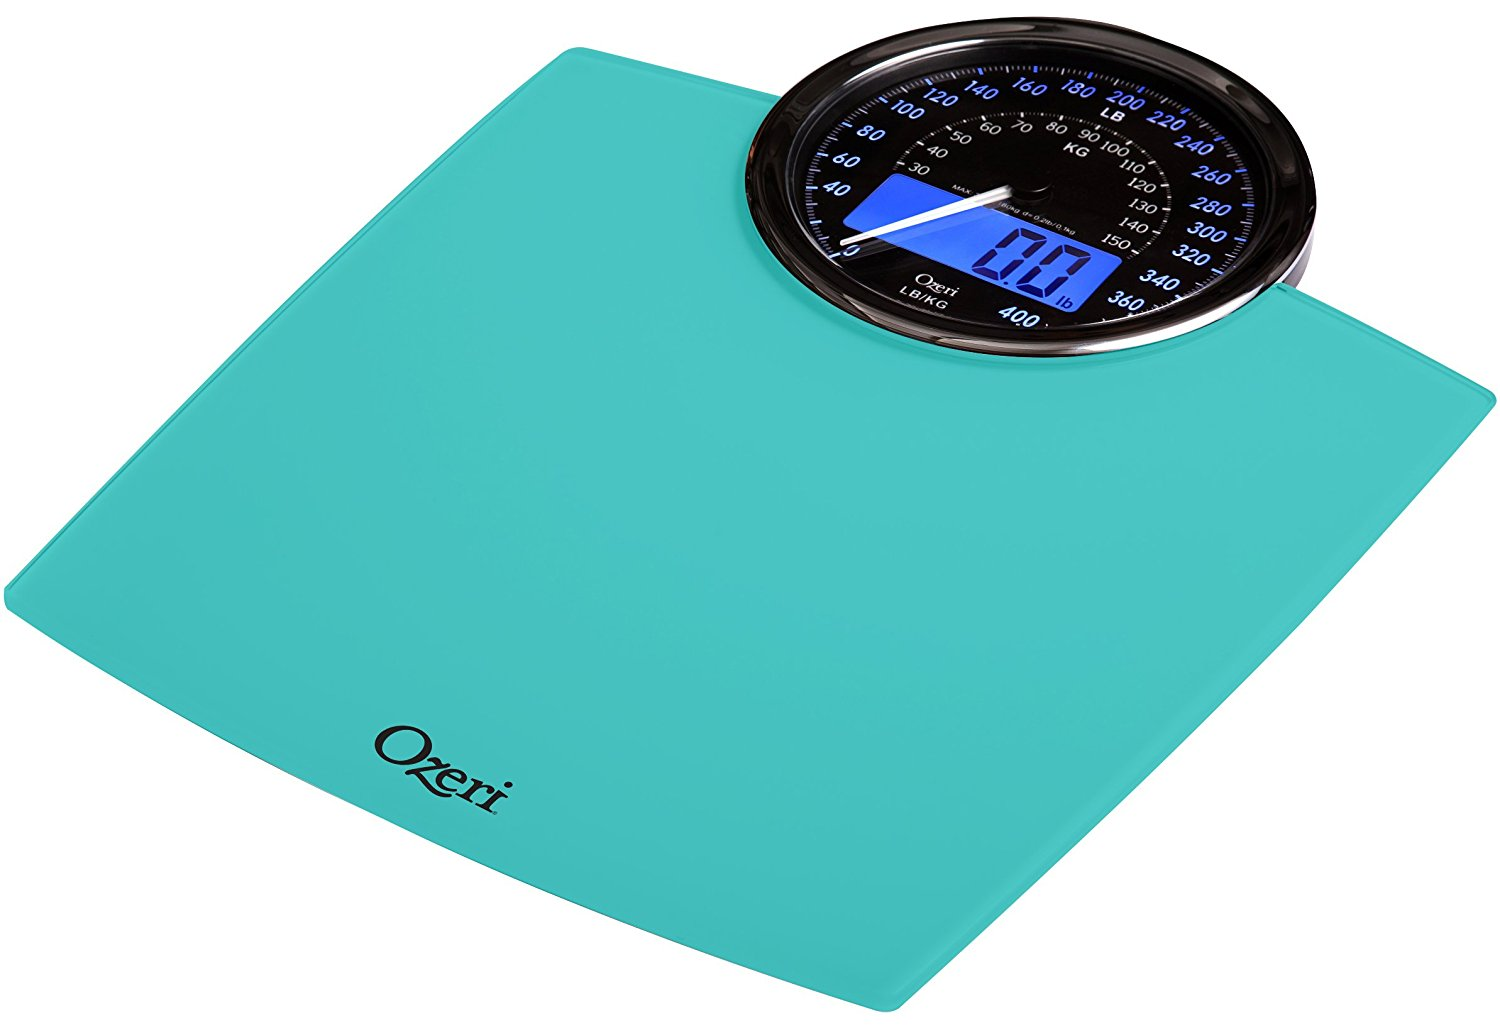 Ozeri Rev Digital Bathroom Scale with Electro-Mechanical Weight Dial ...